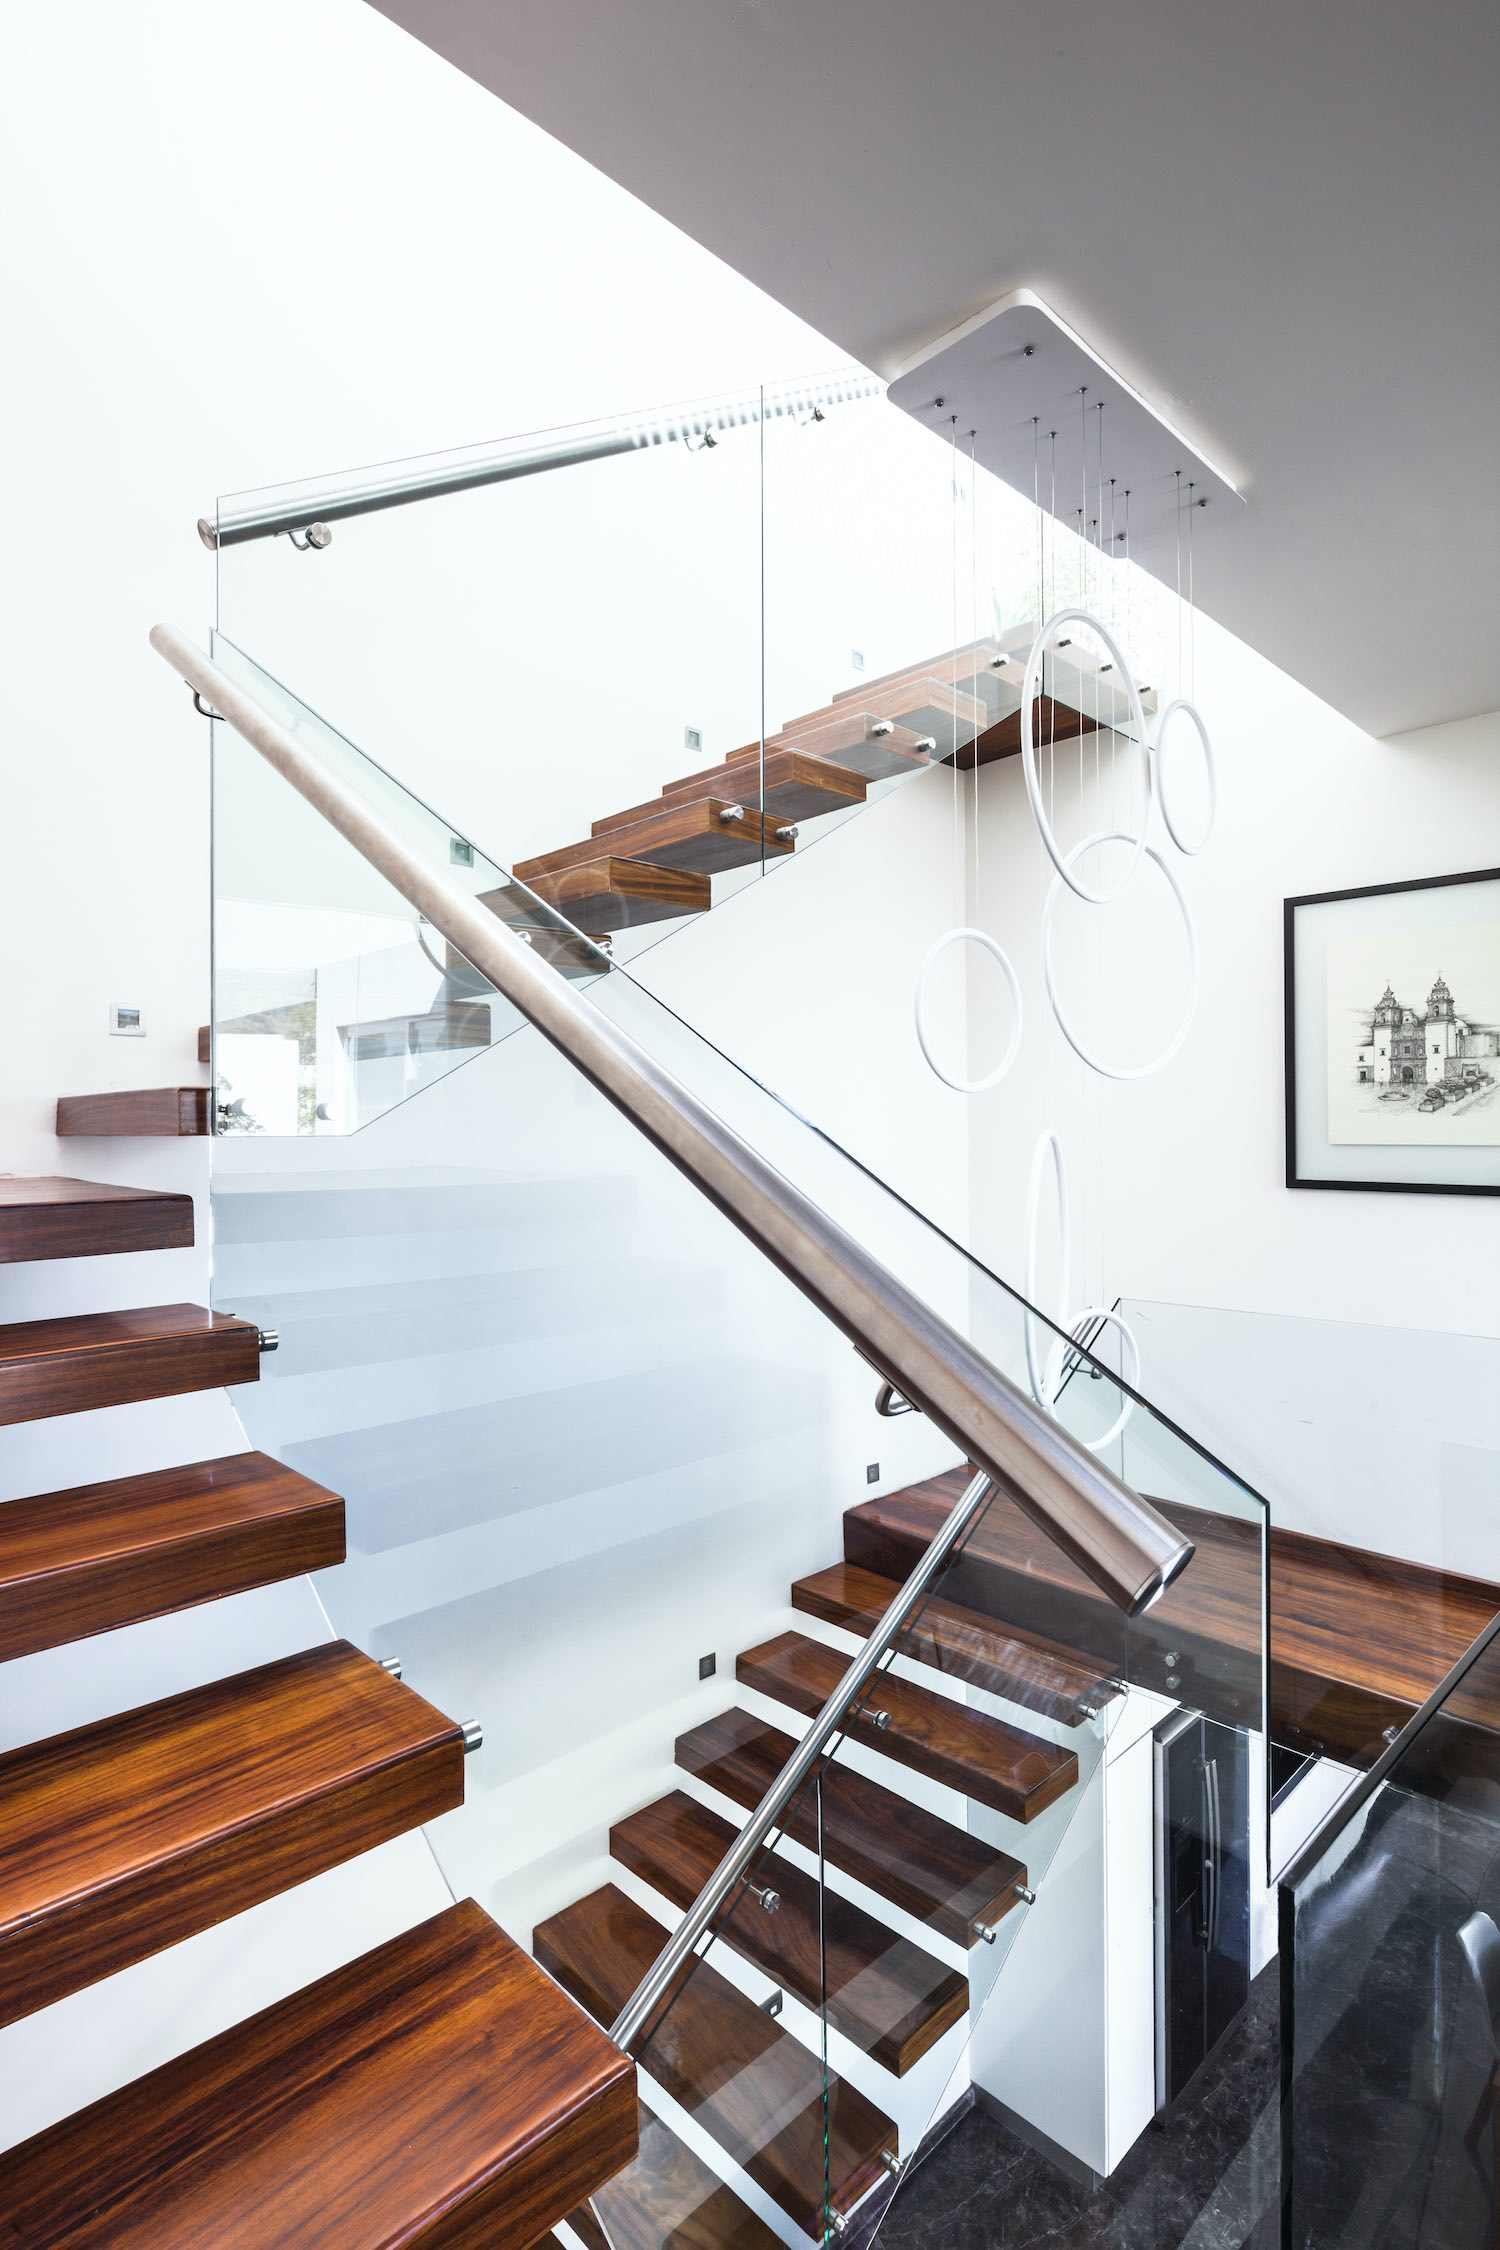 staircase with wooden stapes and glass handrail